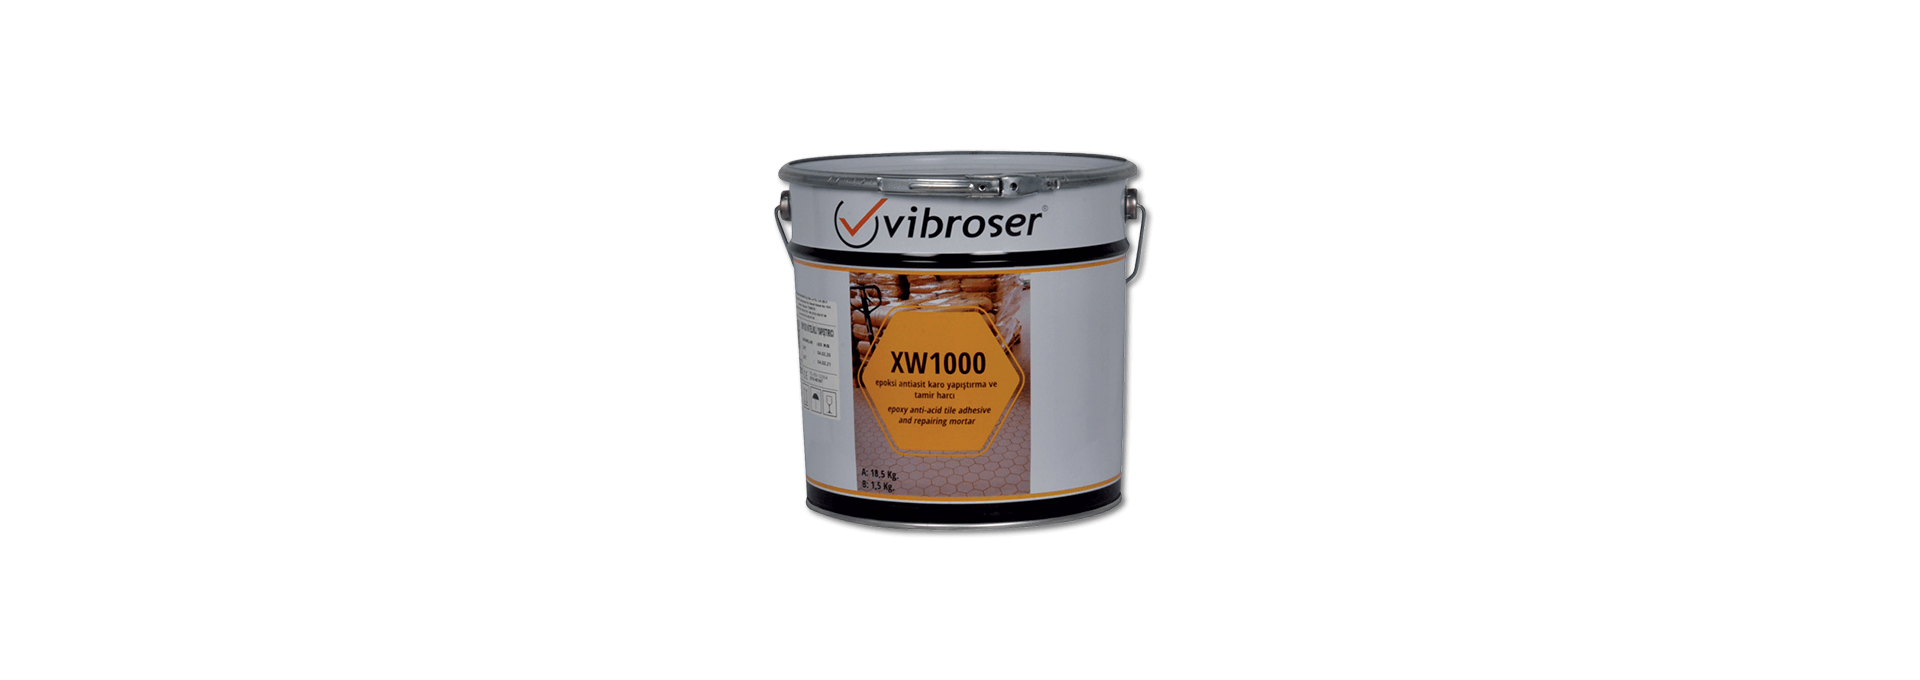 Epoxy Adhesive And Repair Mortar Xw1000 0000eyth Vibroser